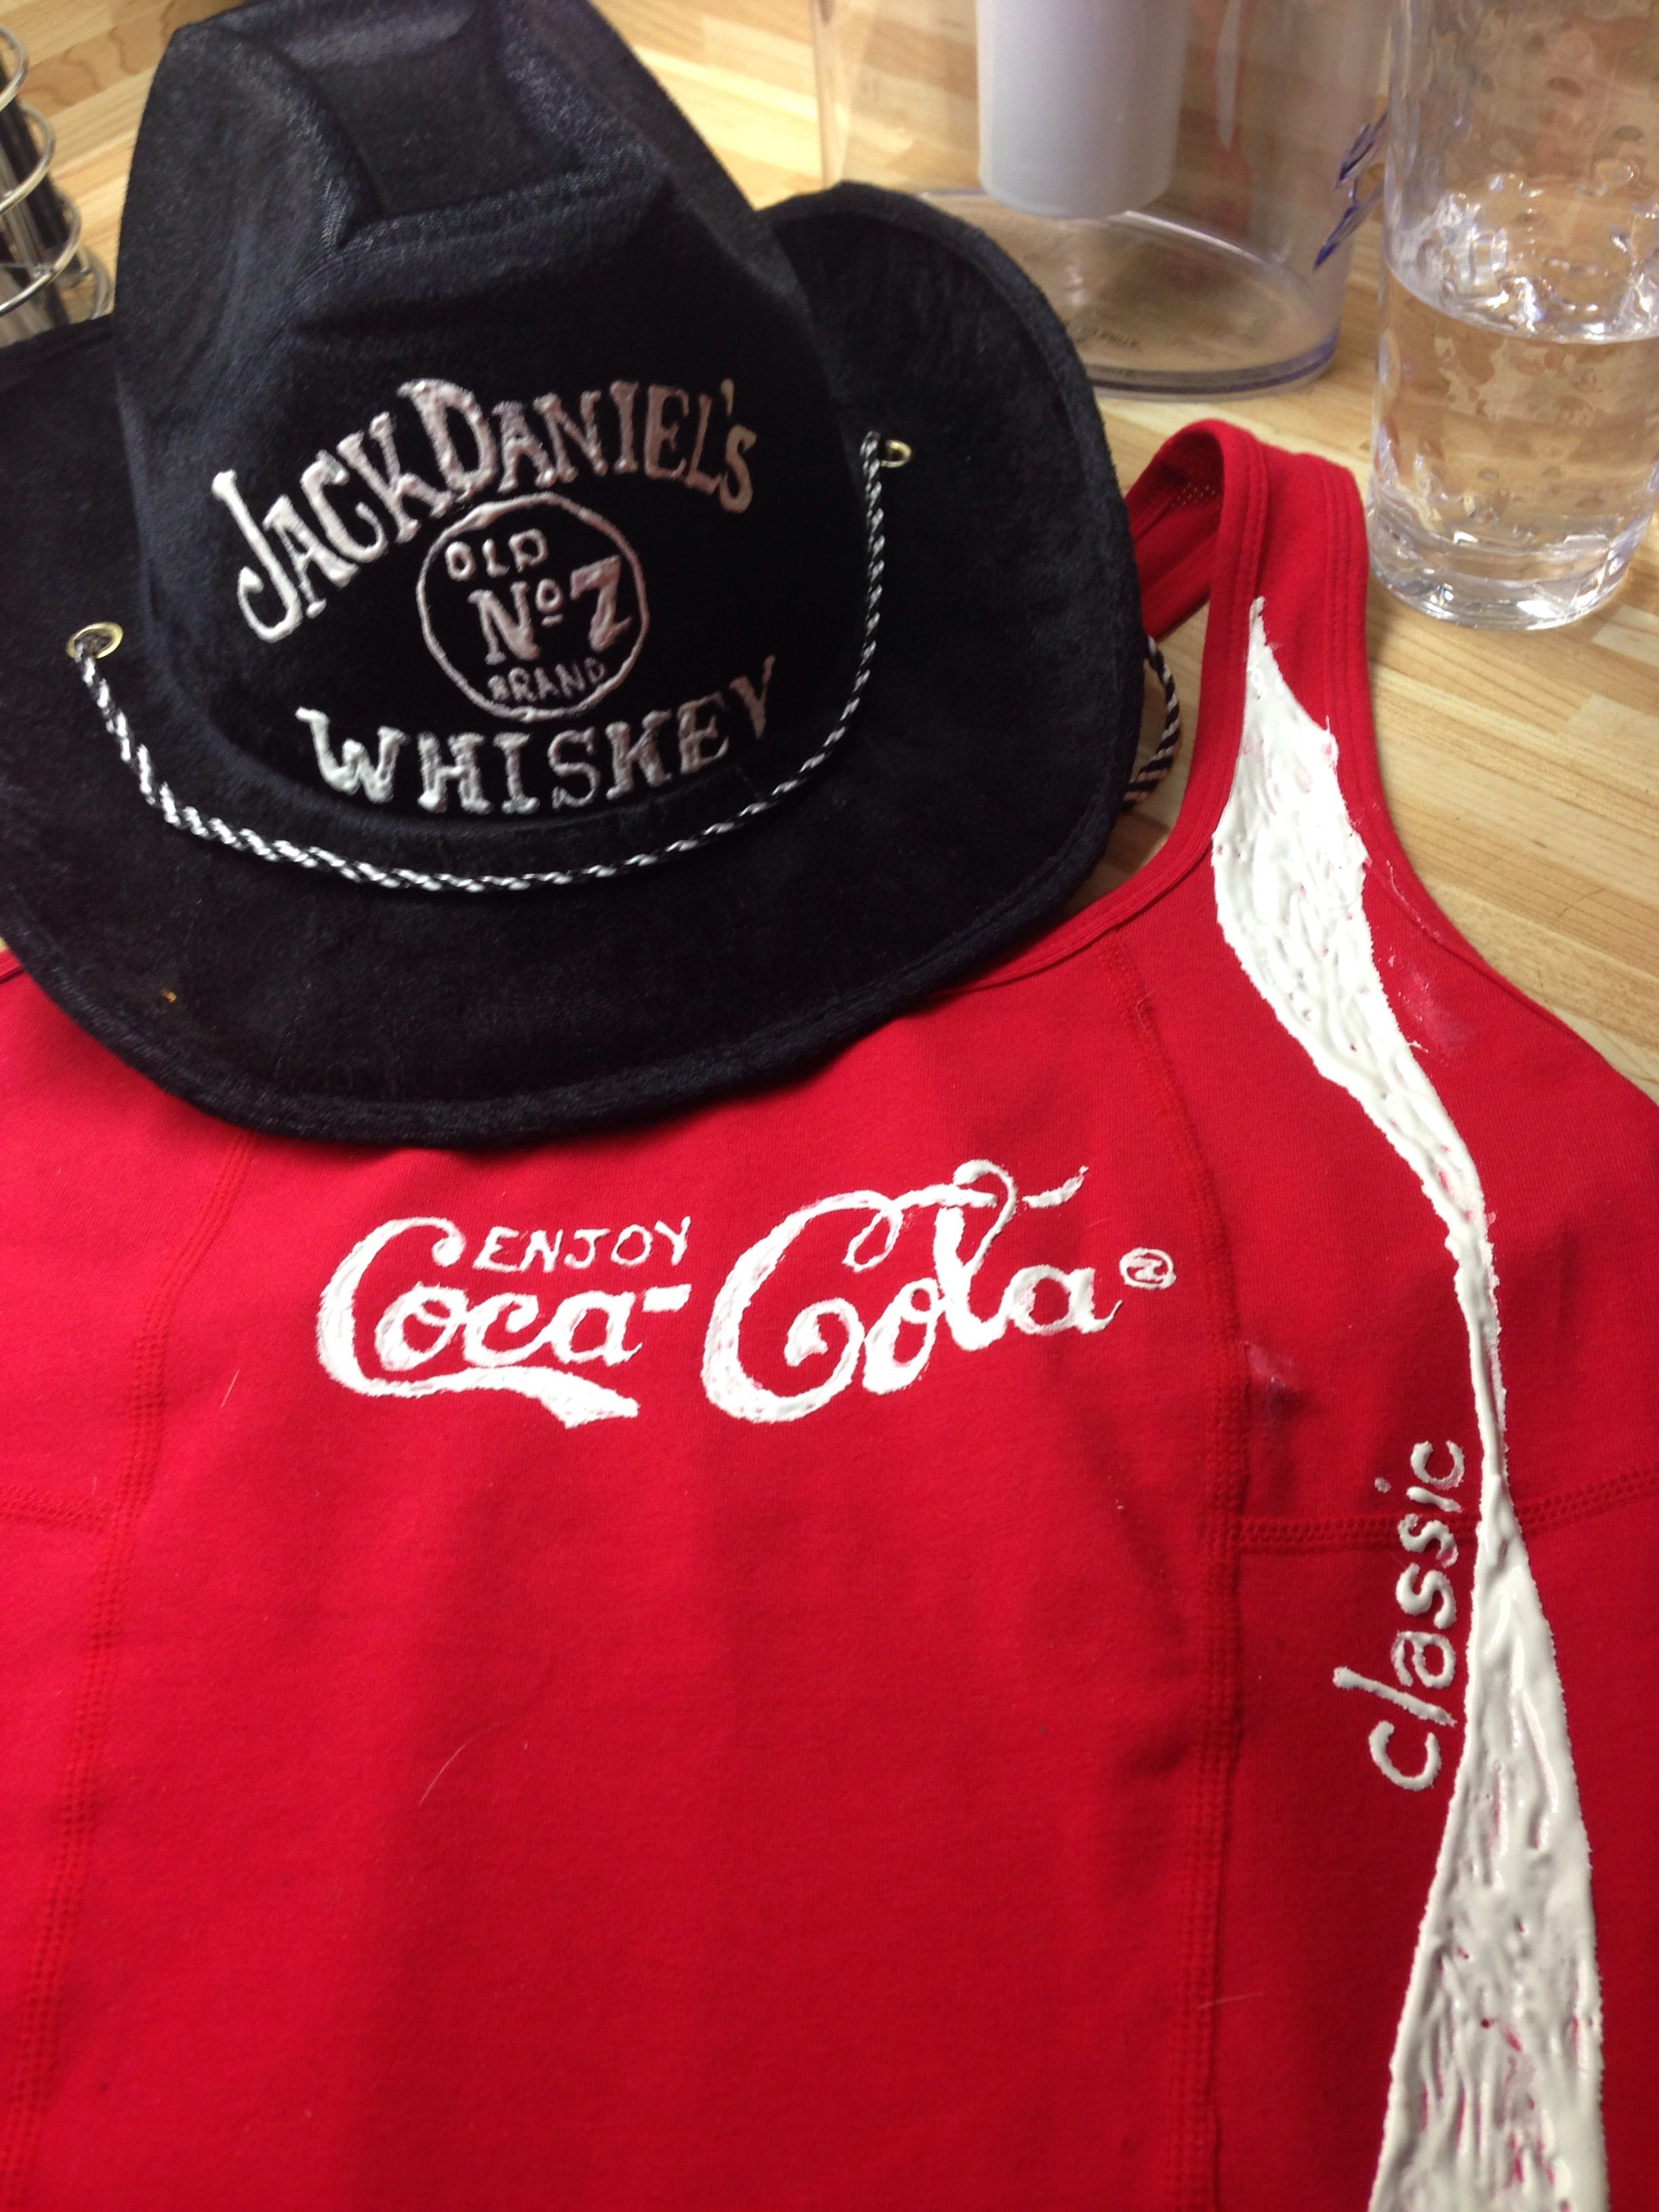 Diy Couple Halloween Costume Fabric Paint A Cowboy Hat And A Red Tshirt Whis Couple Halloween Costumes Diy Couple Halloween Costumes Jack Daniels Cowboy Hats